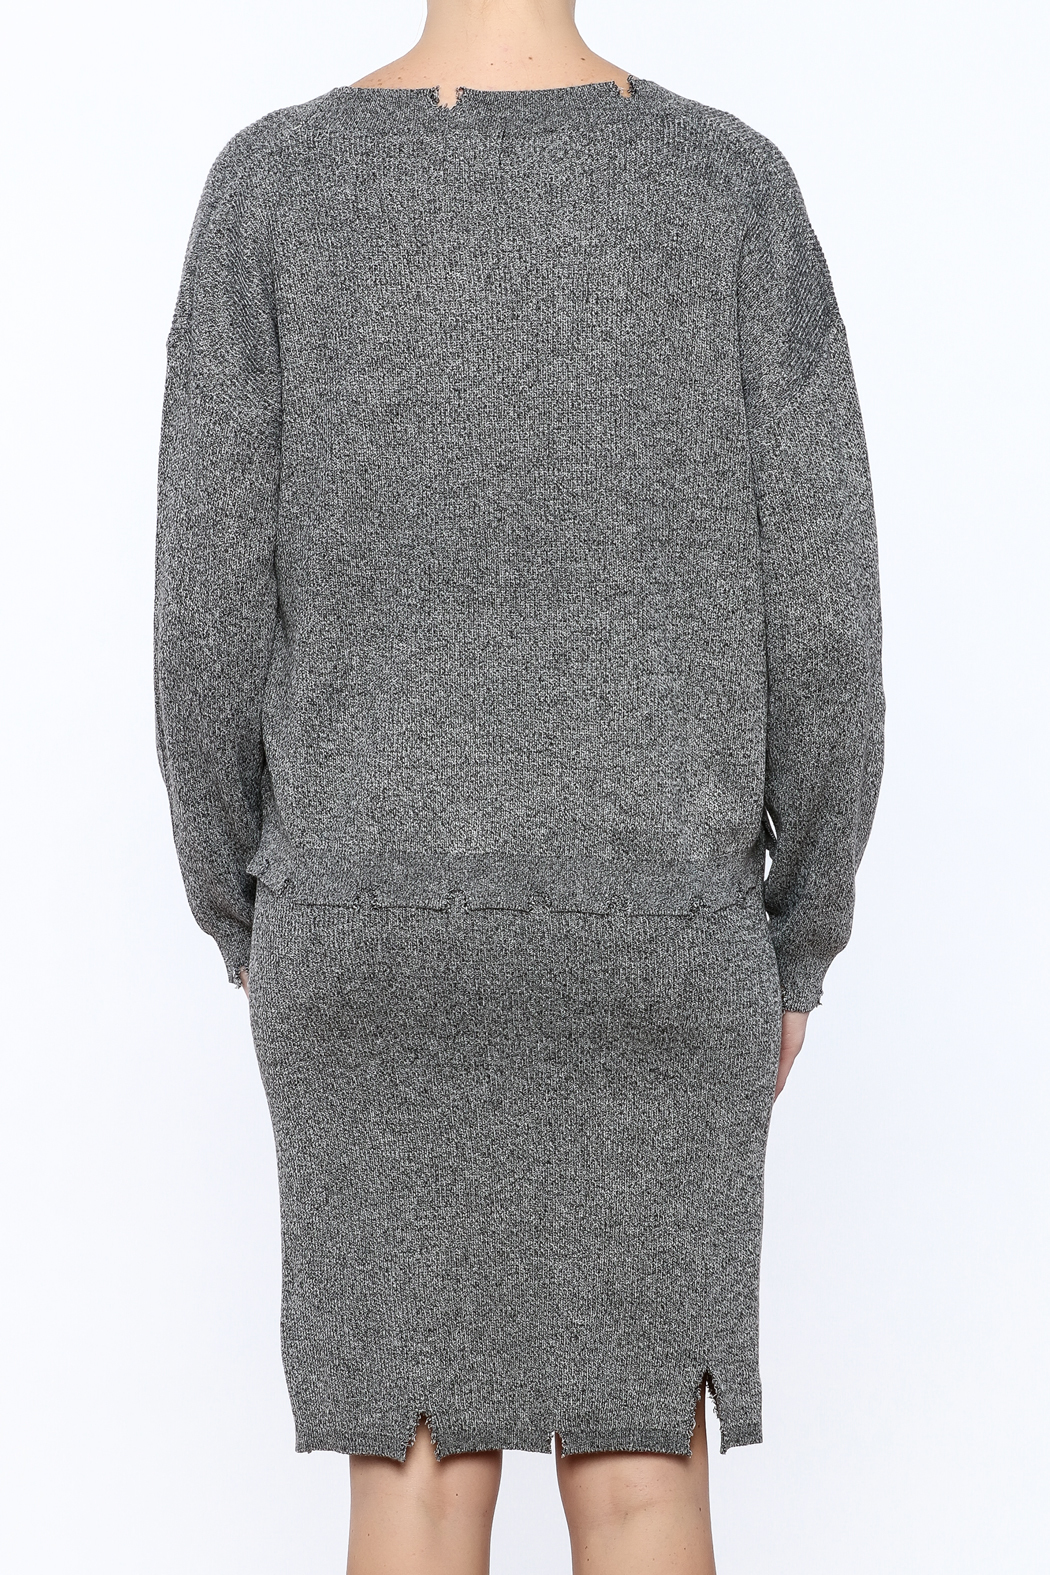 POL Waist Length Distressed Sweater - Back Cropped Image